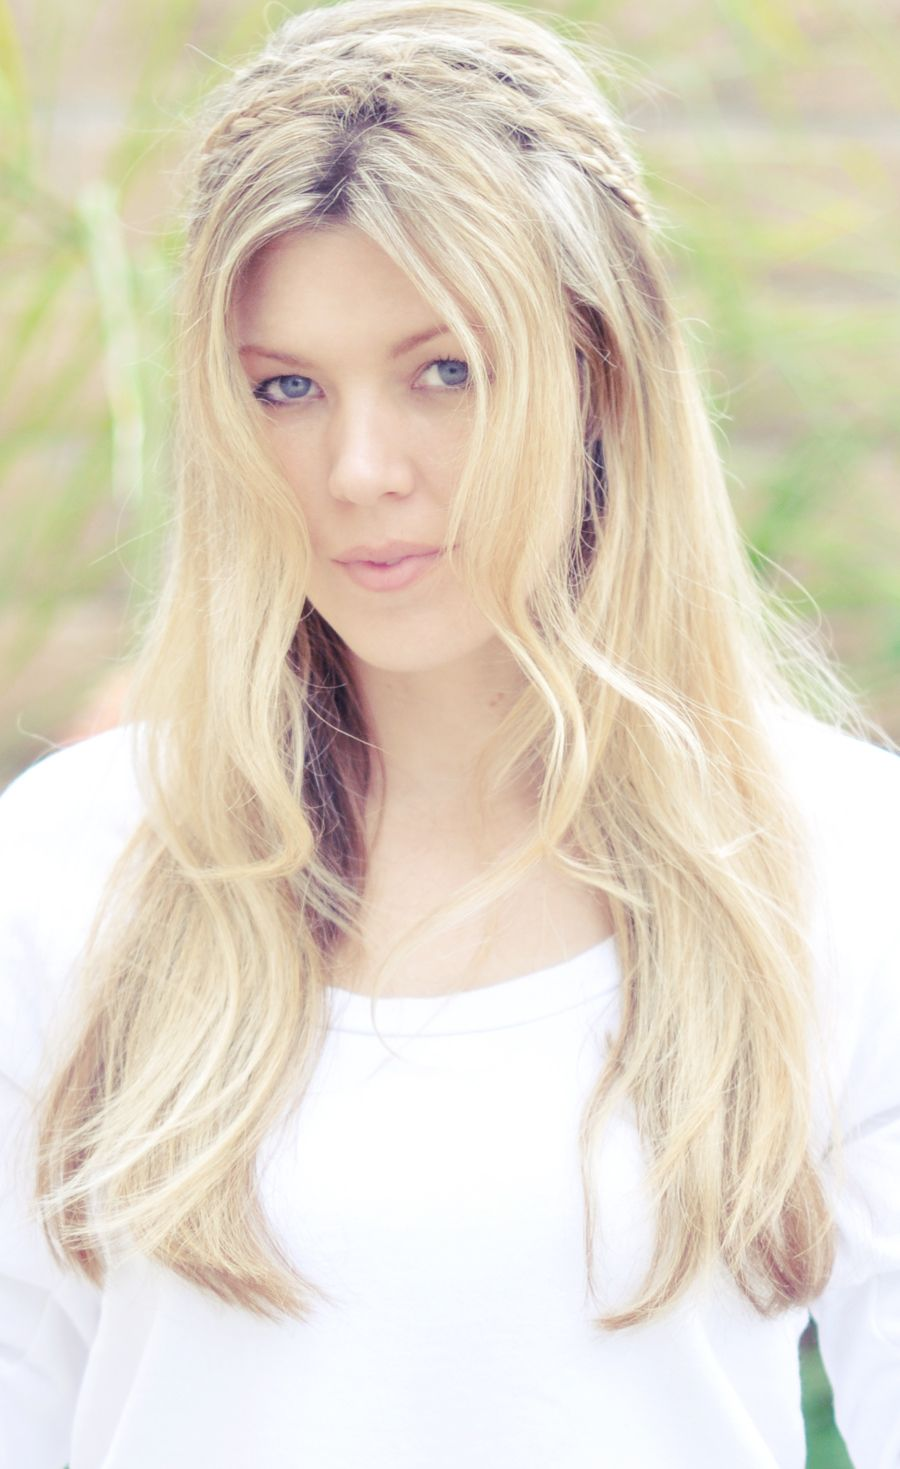 hair #blonde #long #braid #wavy #headband | hair | Pinterest | Long ...